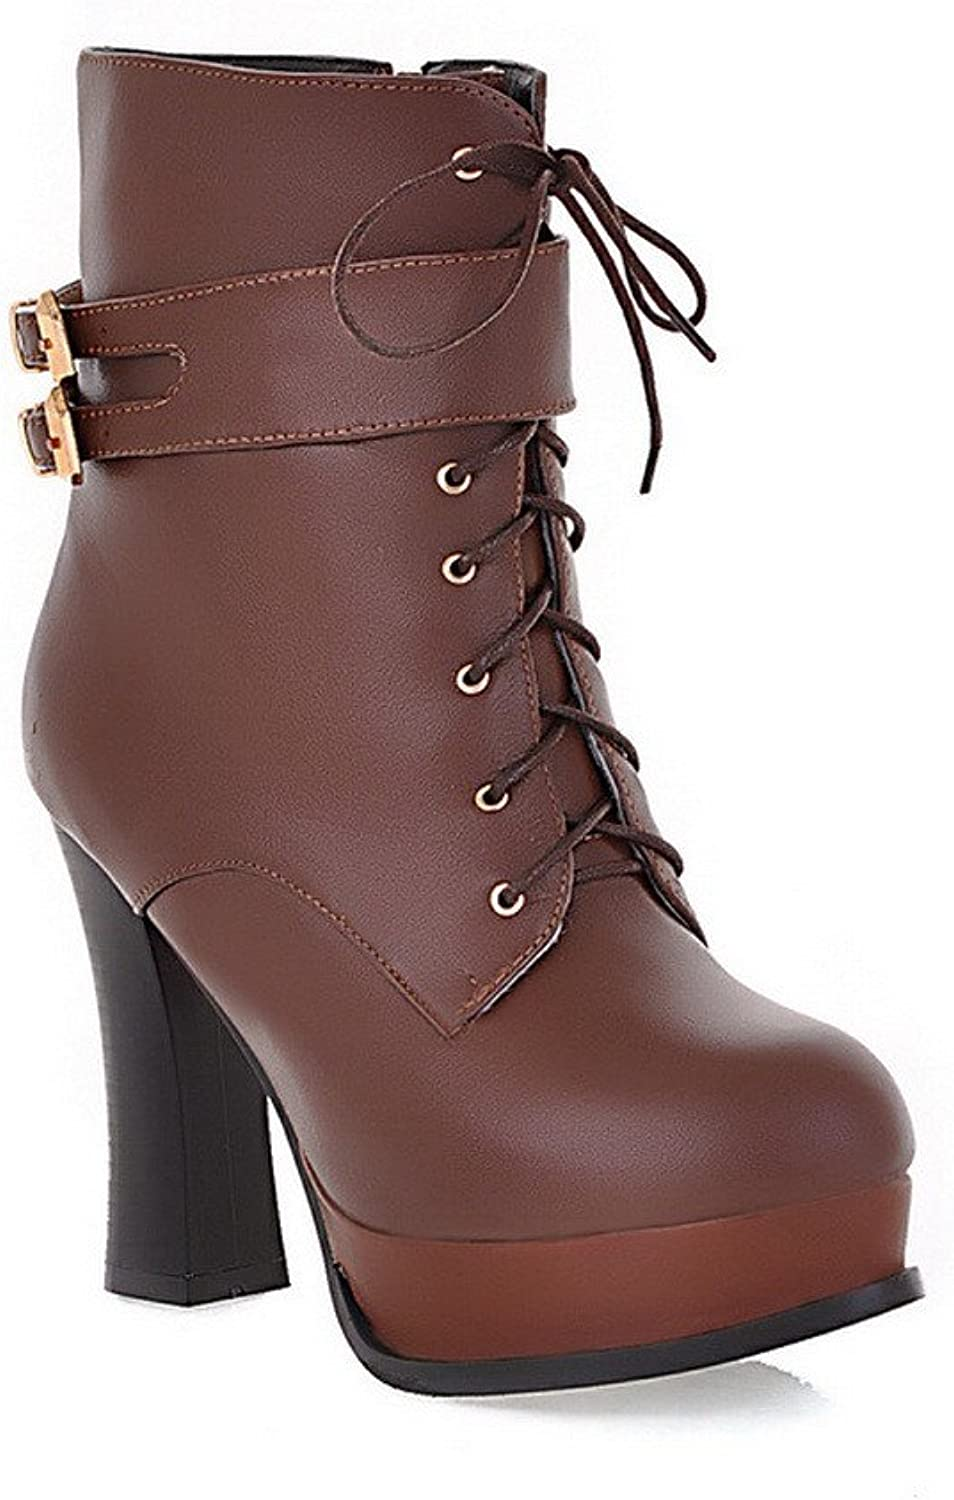 QueenFashion Women's Suede Short Plush High Chunky Heels Lace-up Ankle Boots with Metal Buckles and Zippers